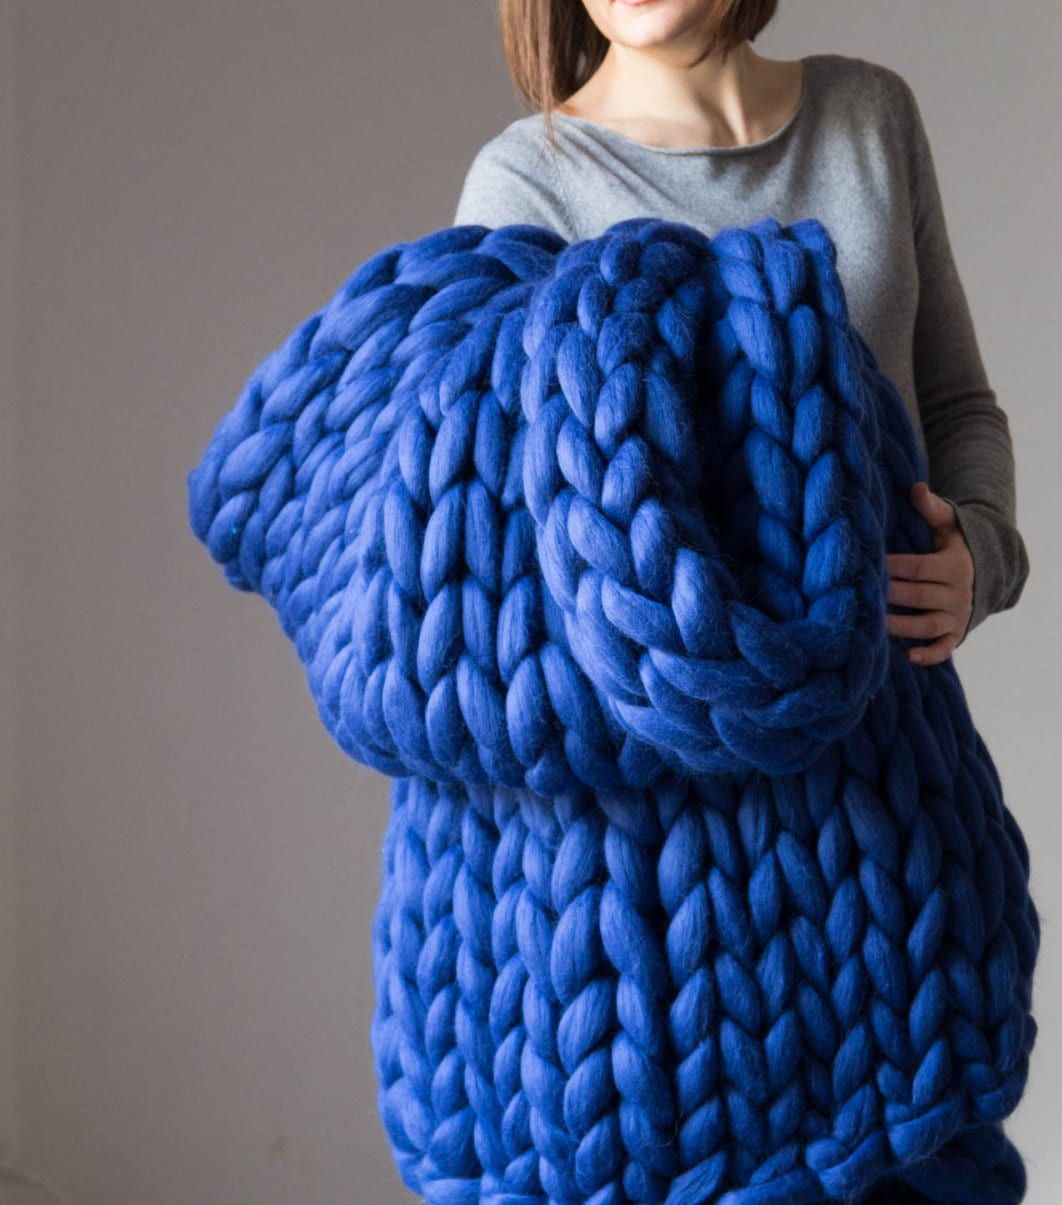 Knitting Wool Blanket : Chunky knit blanket knitted merino wool